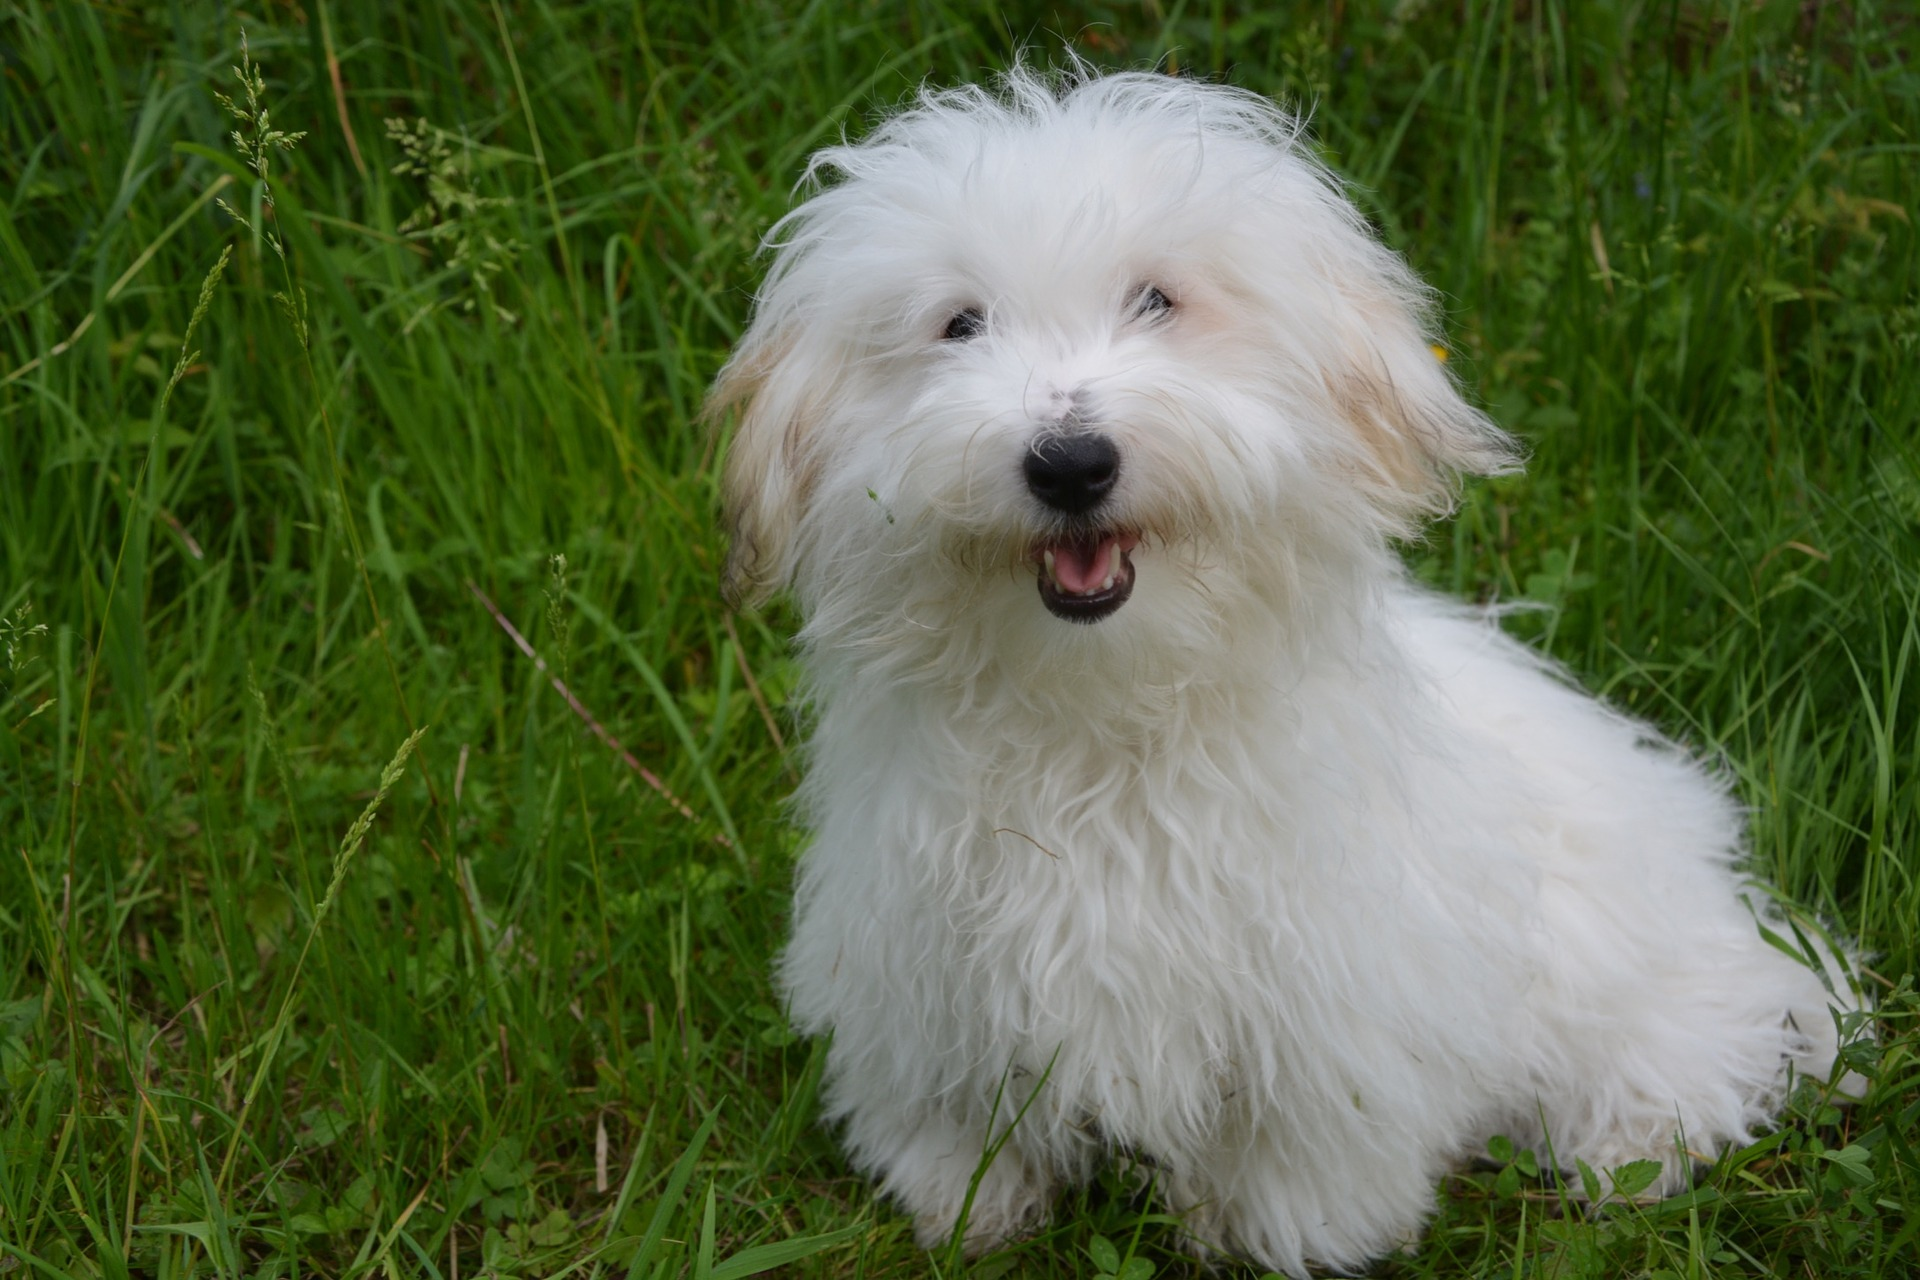 A small, white and fluffy Coton de Tulear dog smiling in grass.